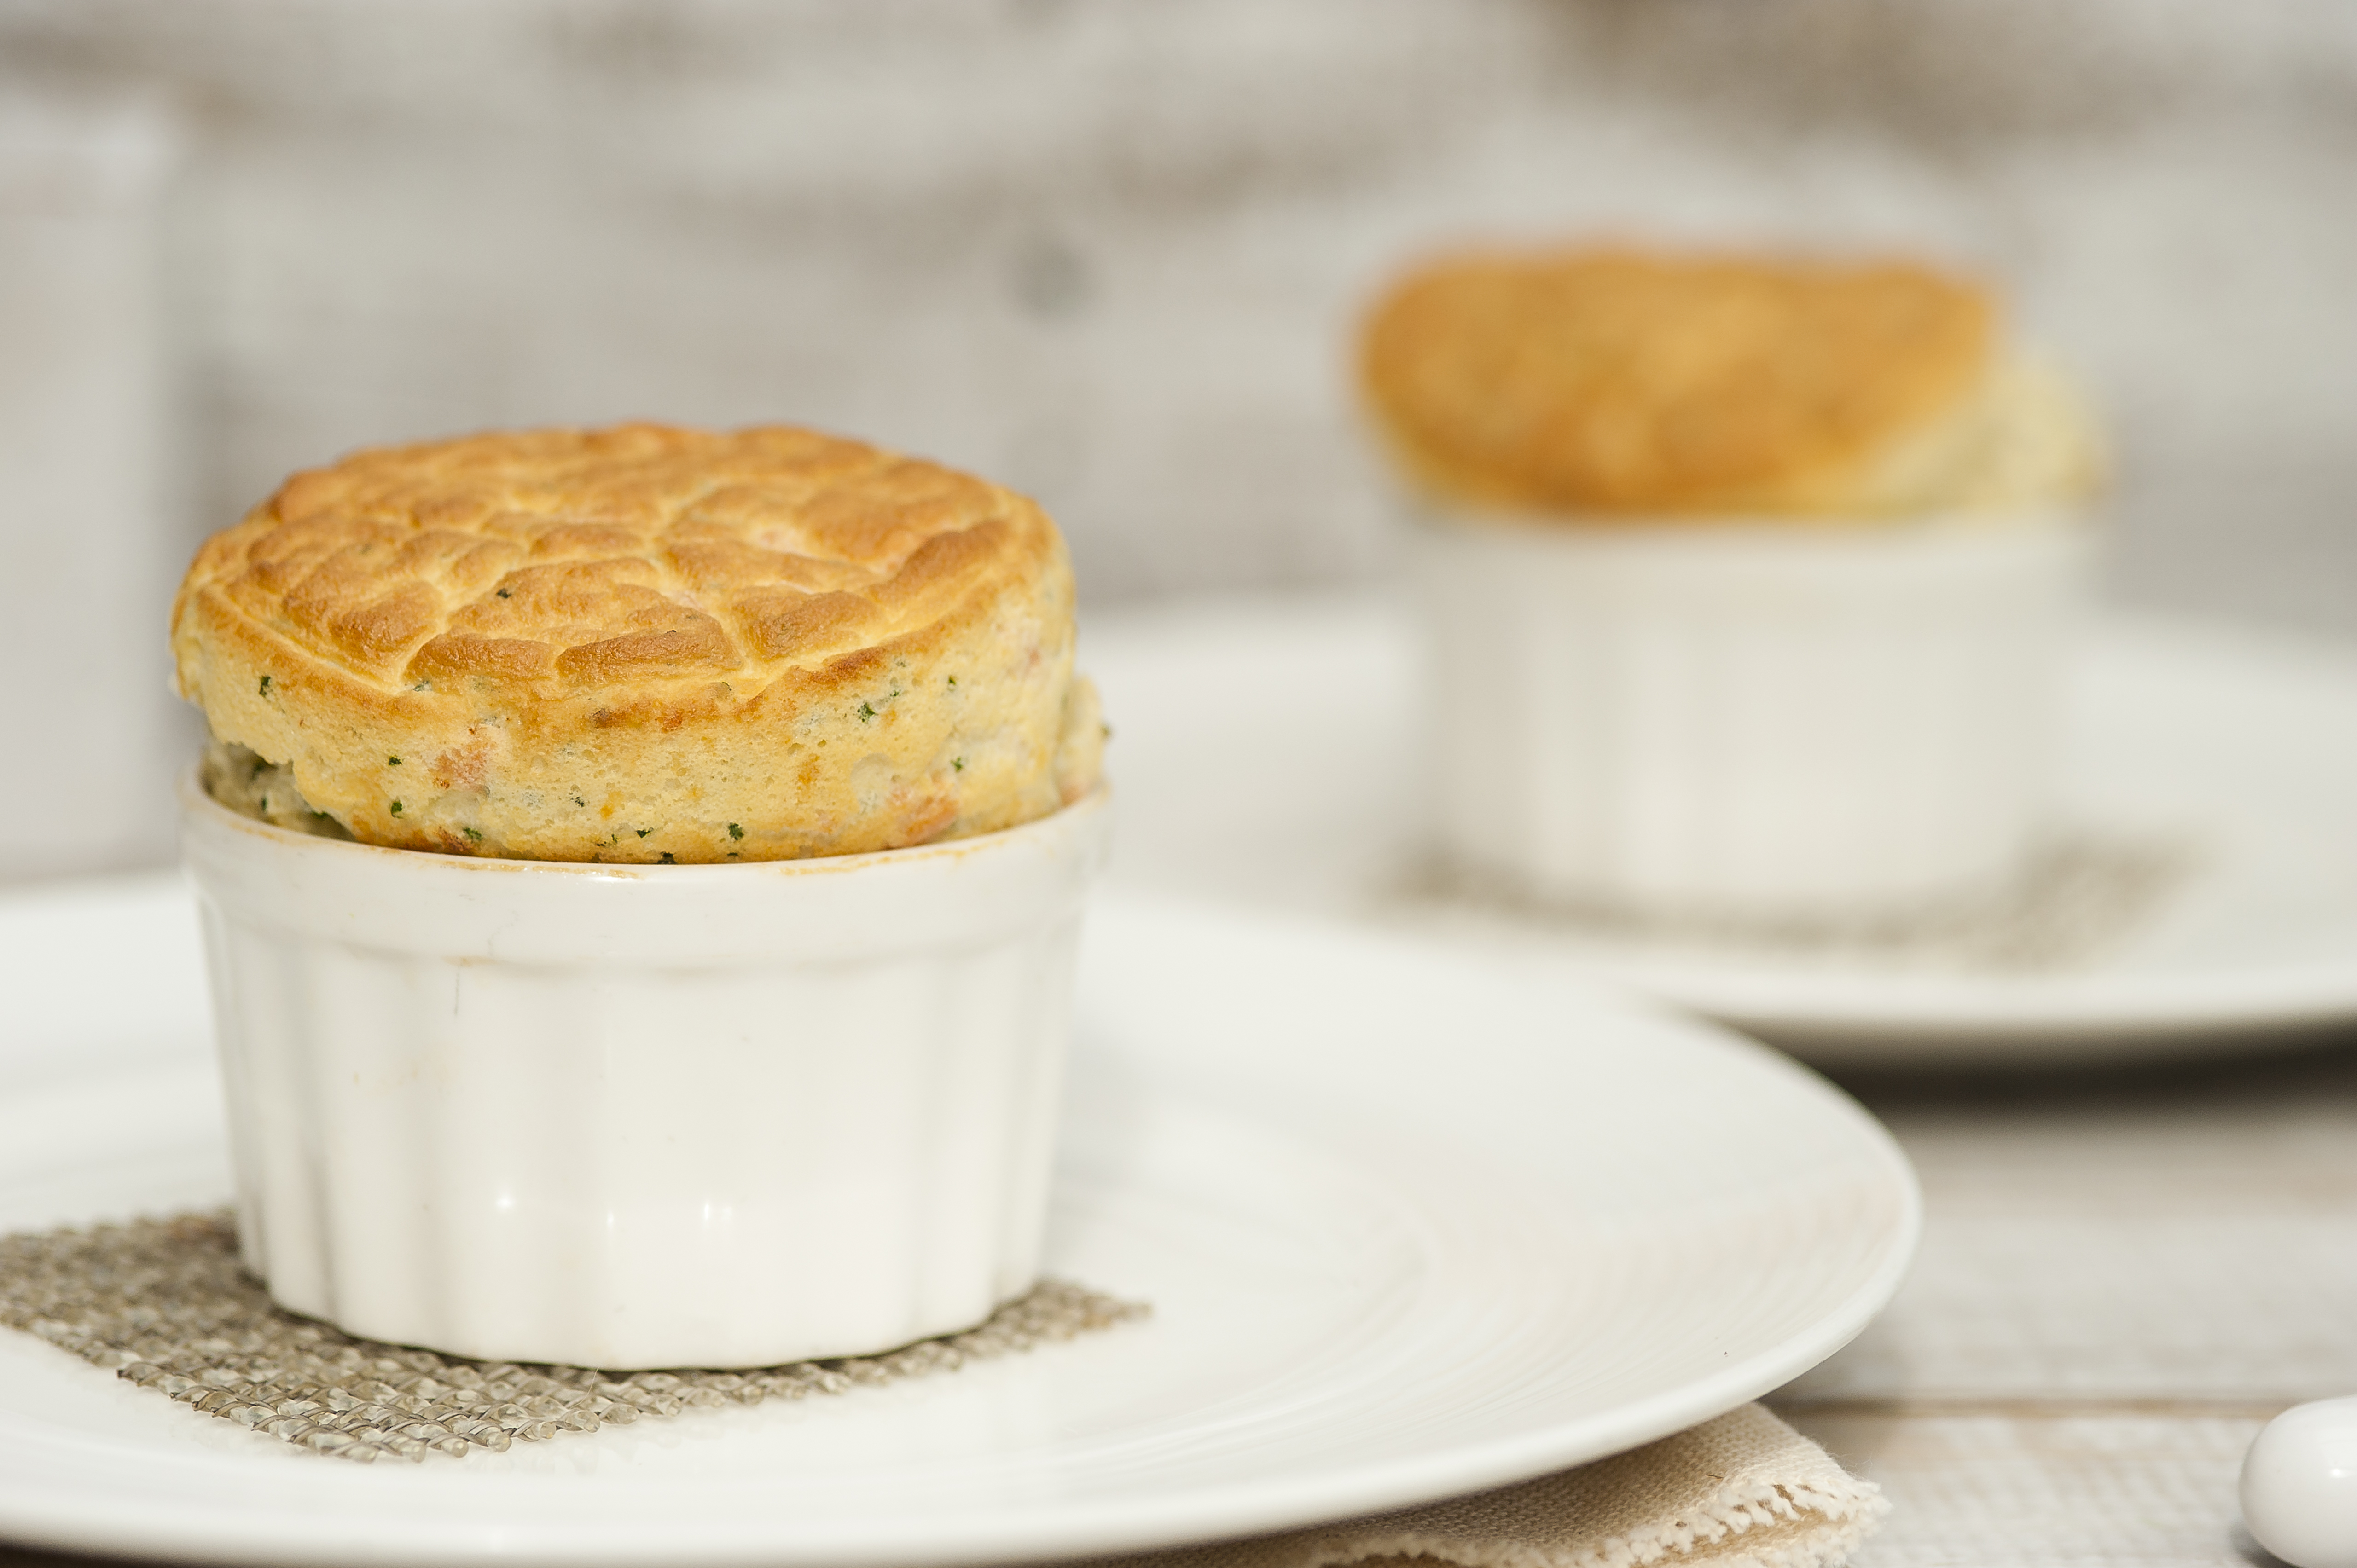 Smoked Cheddar Souffle Recipes — Dishmaps